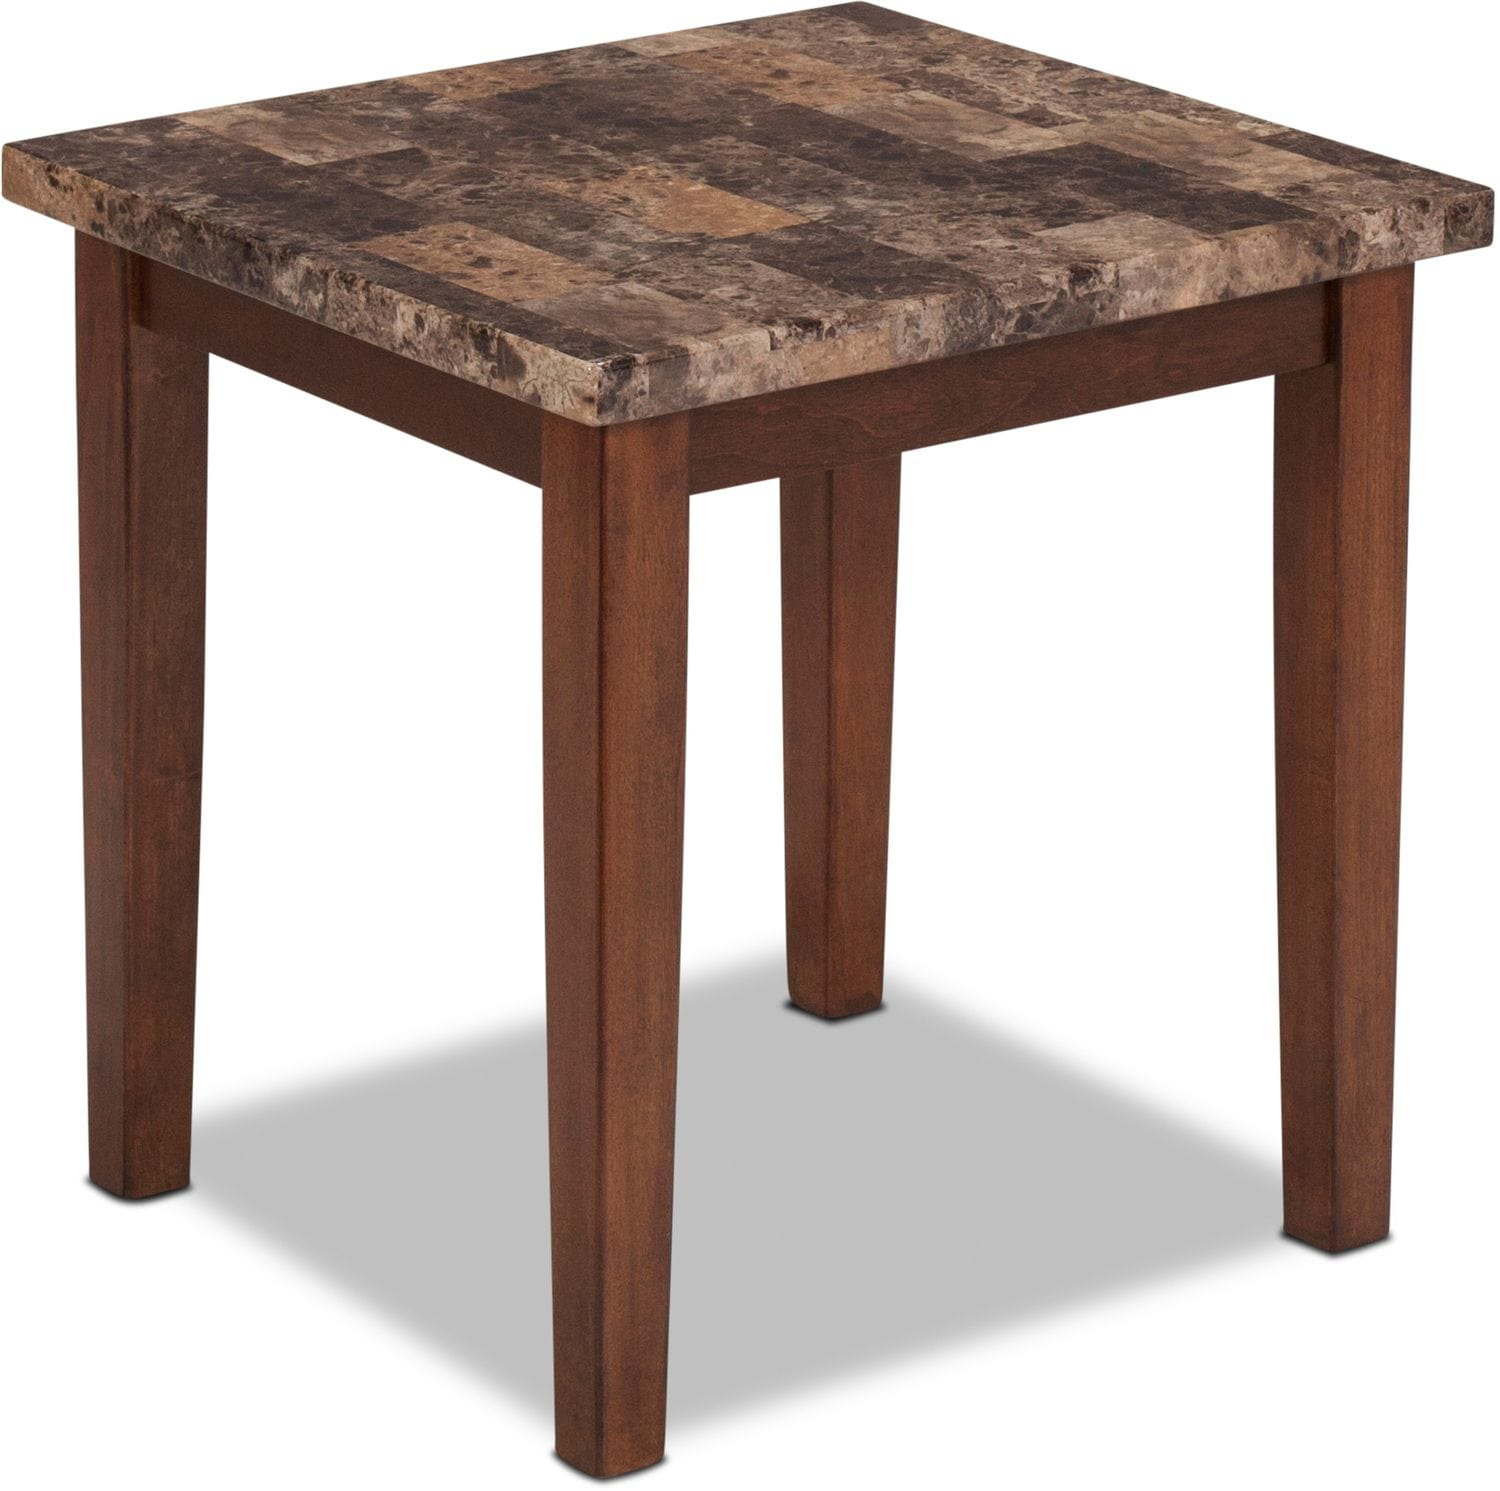 Adelaide Coffee Table and 2 End Tables Warm Brown with  : 487401 from www.levinfurniture.com size 1500 x 1491 jpeg 200kB